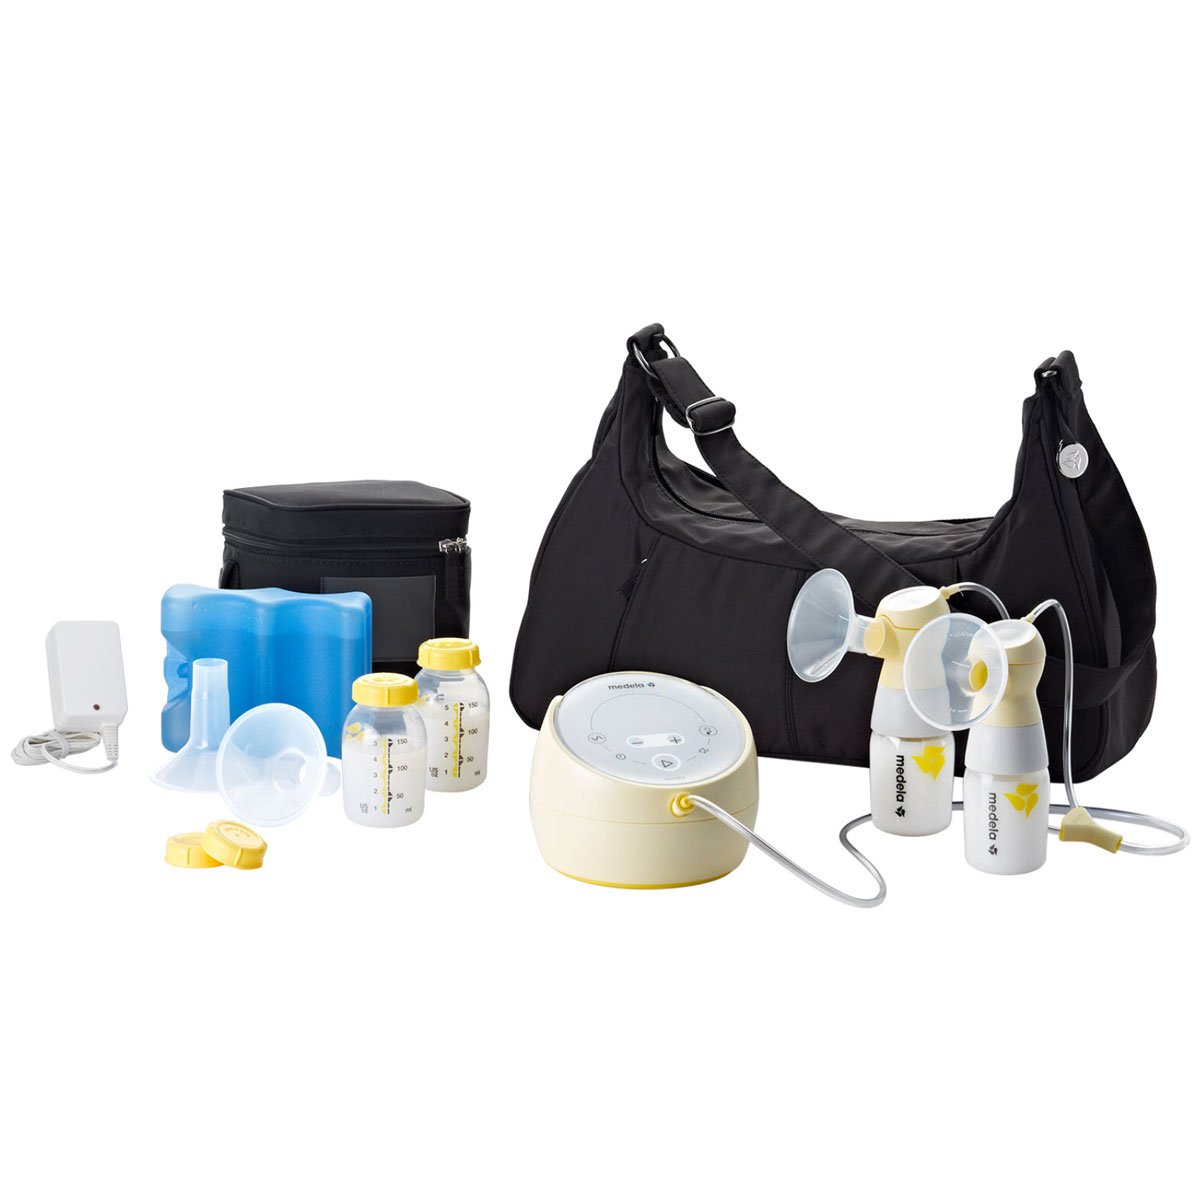 Medela Sonata Breast Pump Milk N Mamas Baby